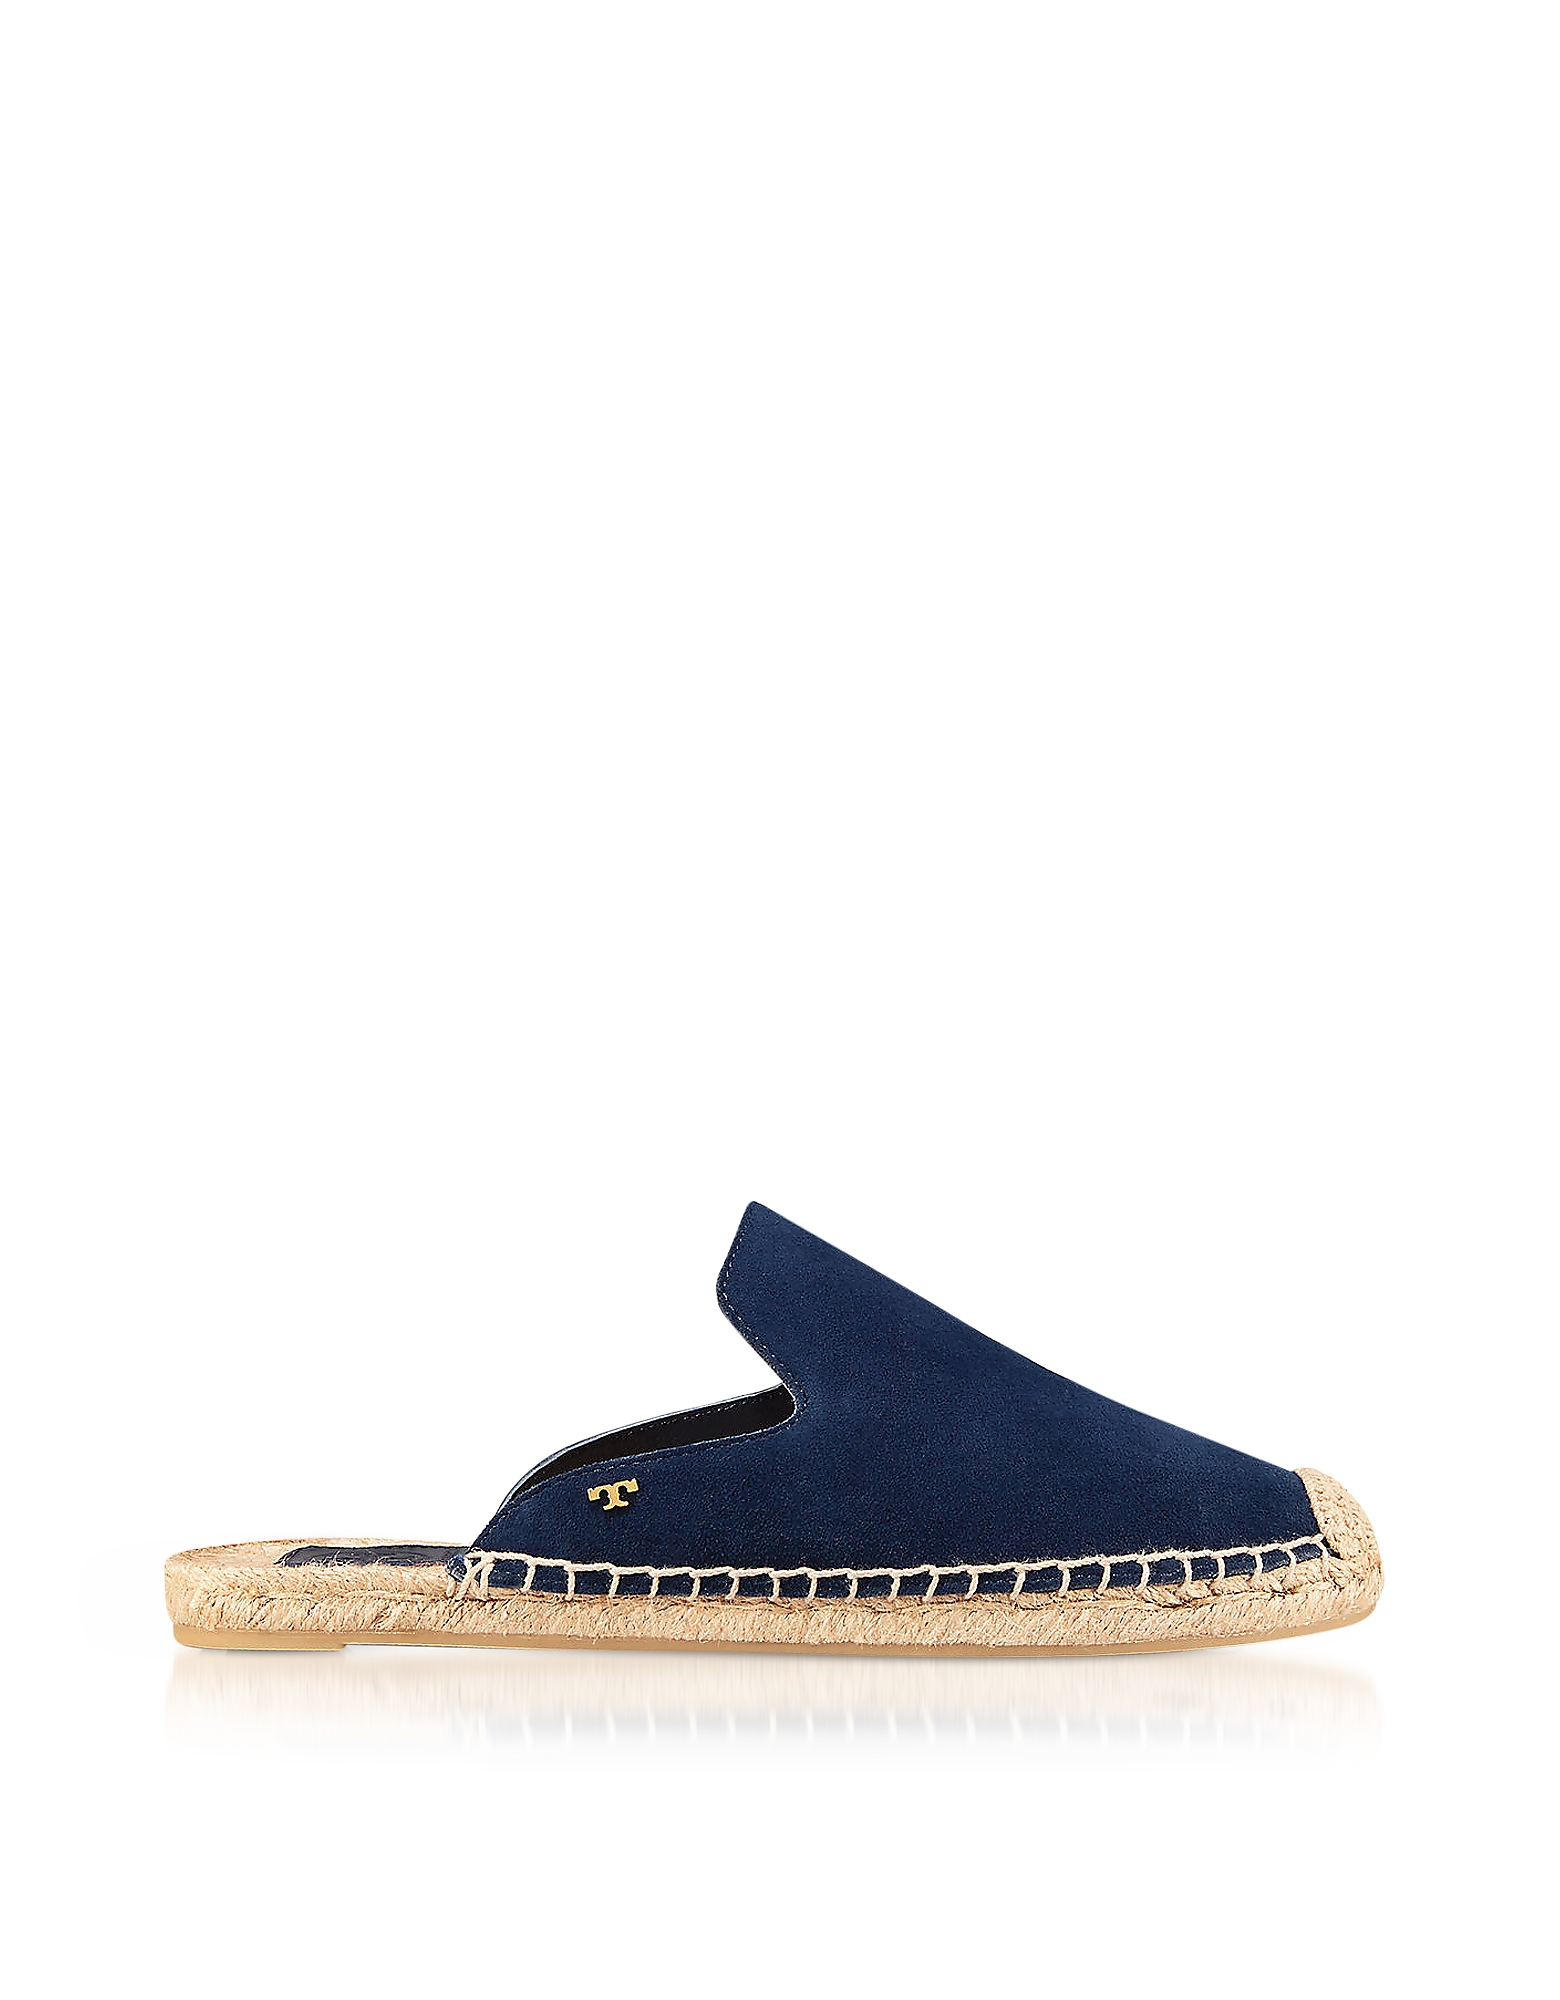 Tory Burch Shoes, Max Royal Navy Suede Flat Slide Espadrilles